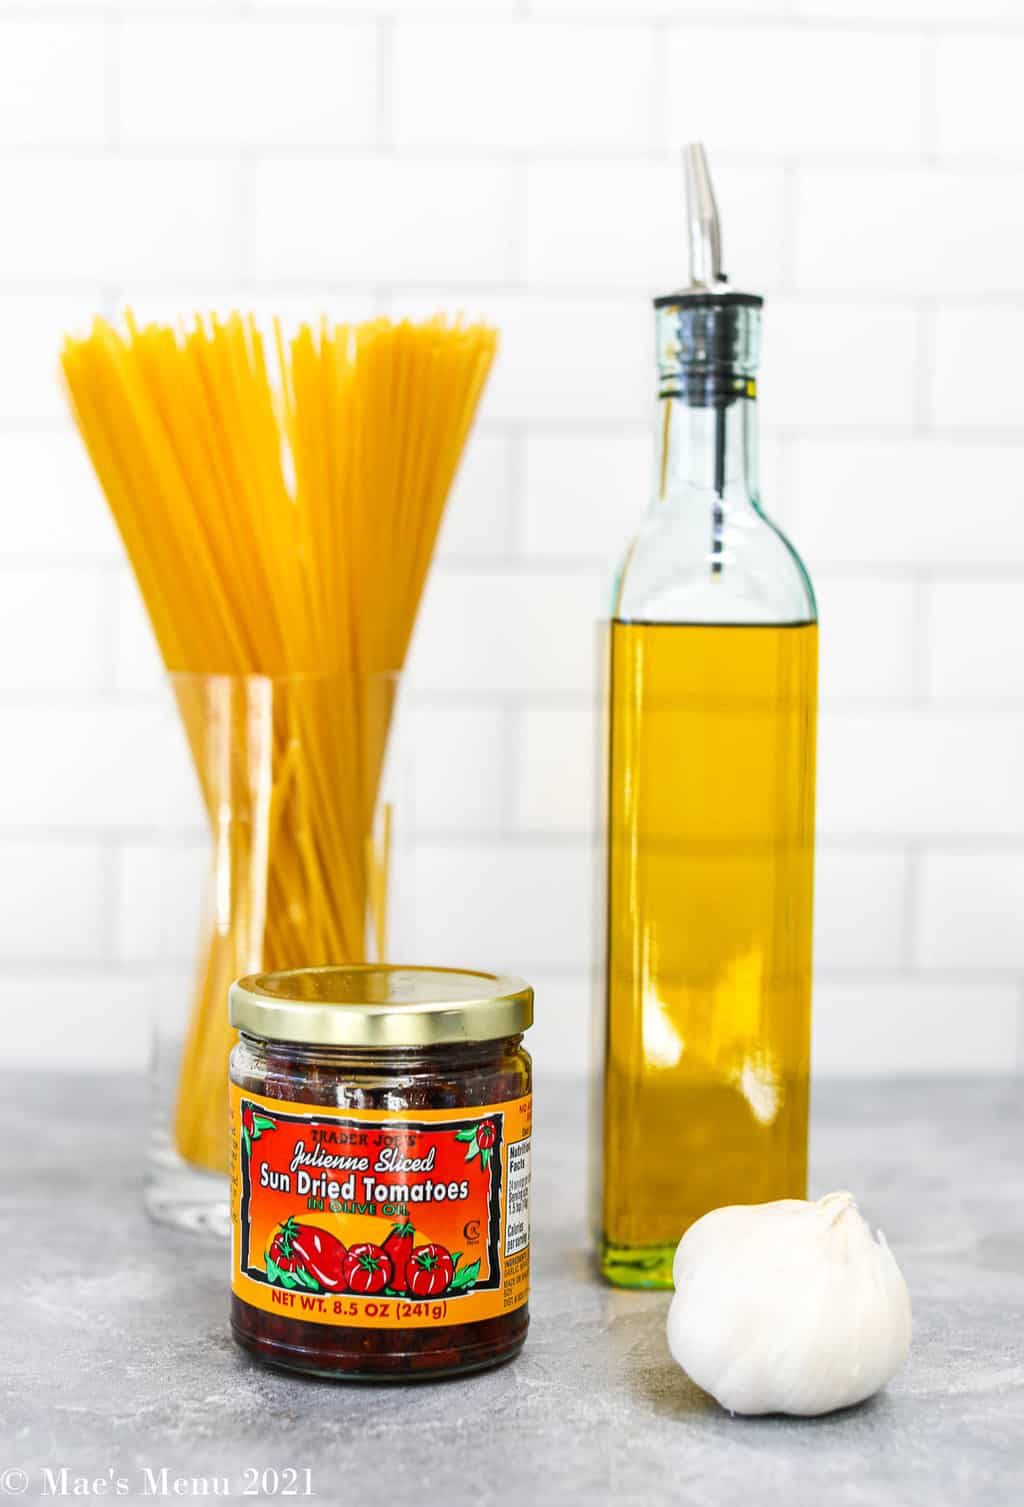 Some ingredients for tomato pesto: garlic, olive oil, sundried tomatoes packed in oil, and a cup of dried linguine